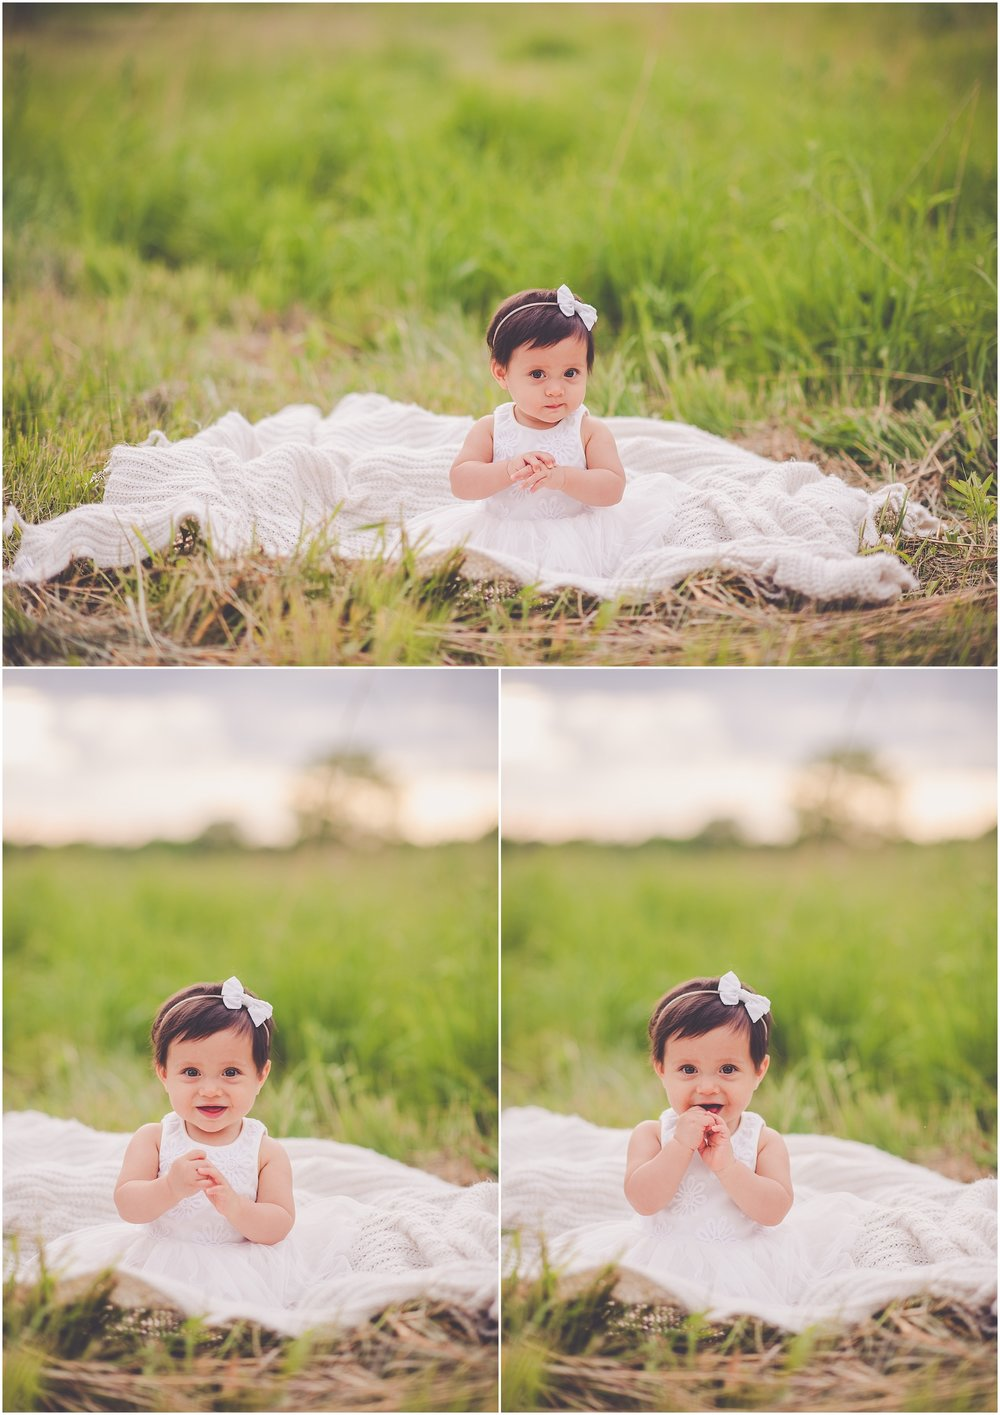 Kara Evans Photographer - Central Illinois Family Photographer - Bourbonnais Family Photographer - Ten Month Baby Session - Summer Lifestyle Family Session